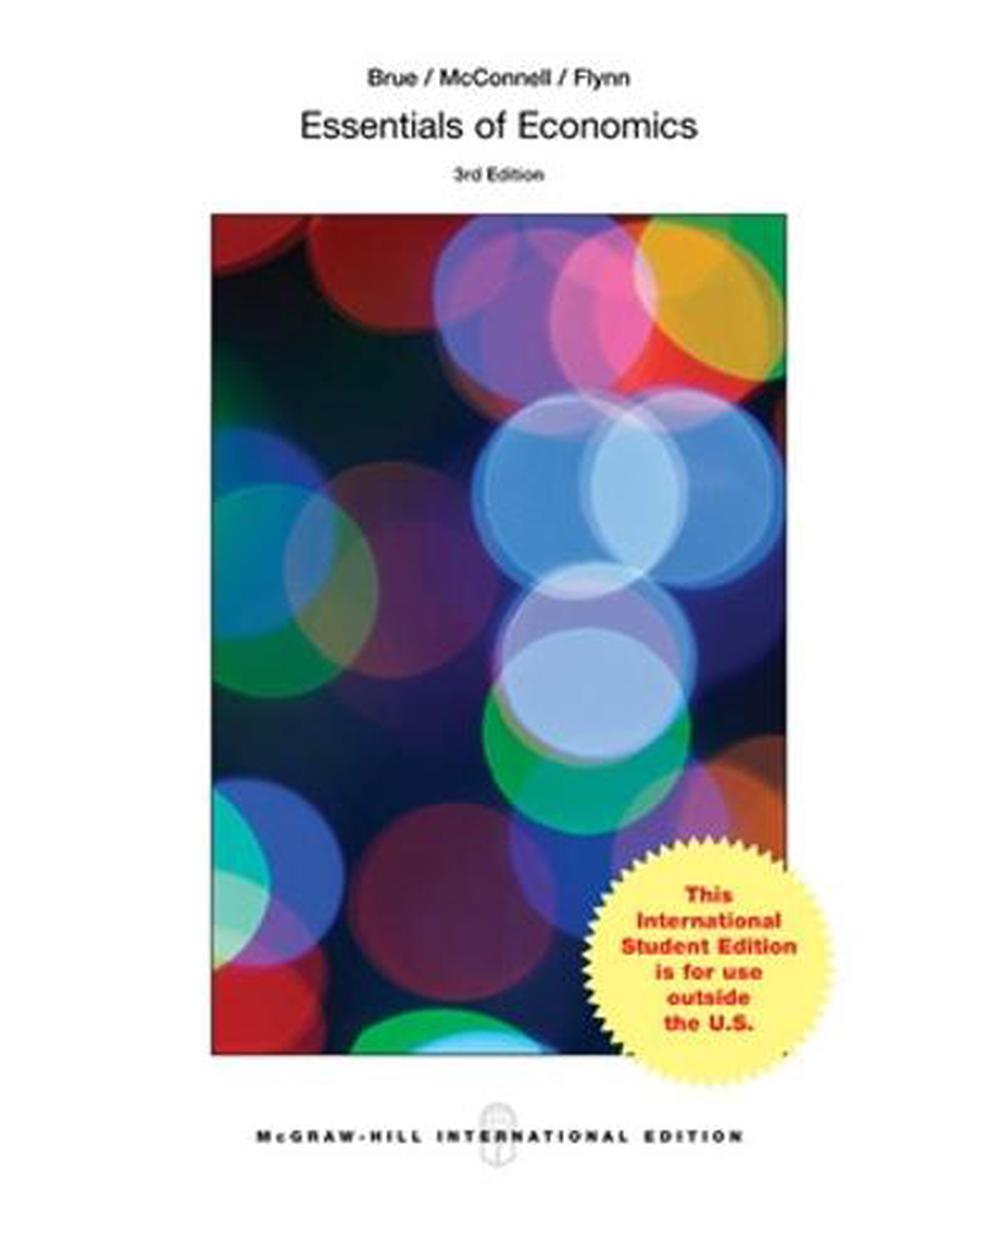 essentials of economics Essentials of economics makes this topic relevant by demonstrating how real businesses use economics to make decisions every day with an ever-changing us and world economy, the 6th edition has been updated with the latest developments using new real-world business and policy examples.